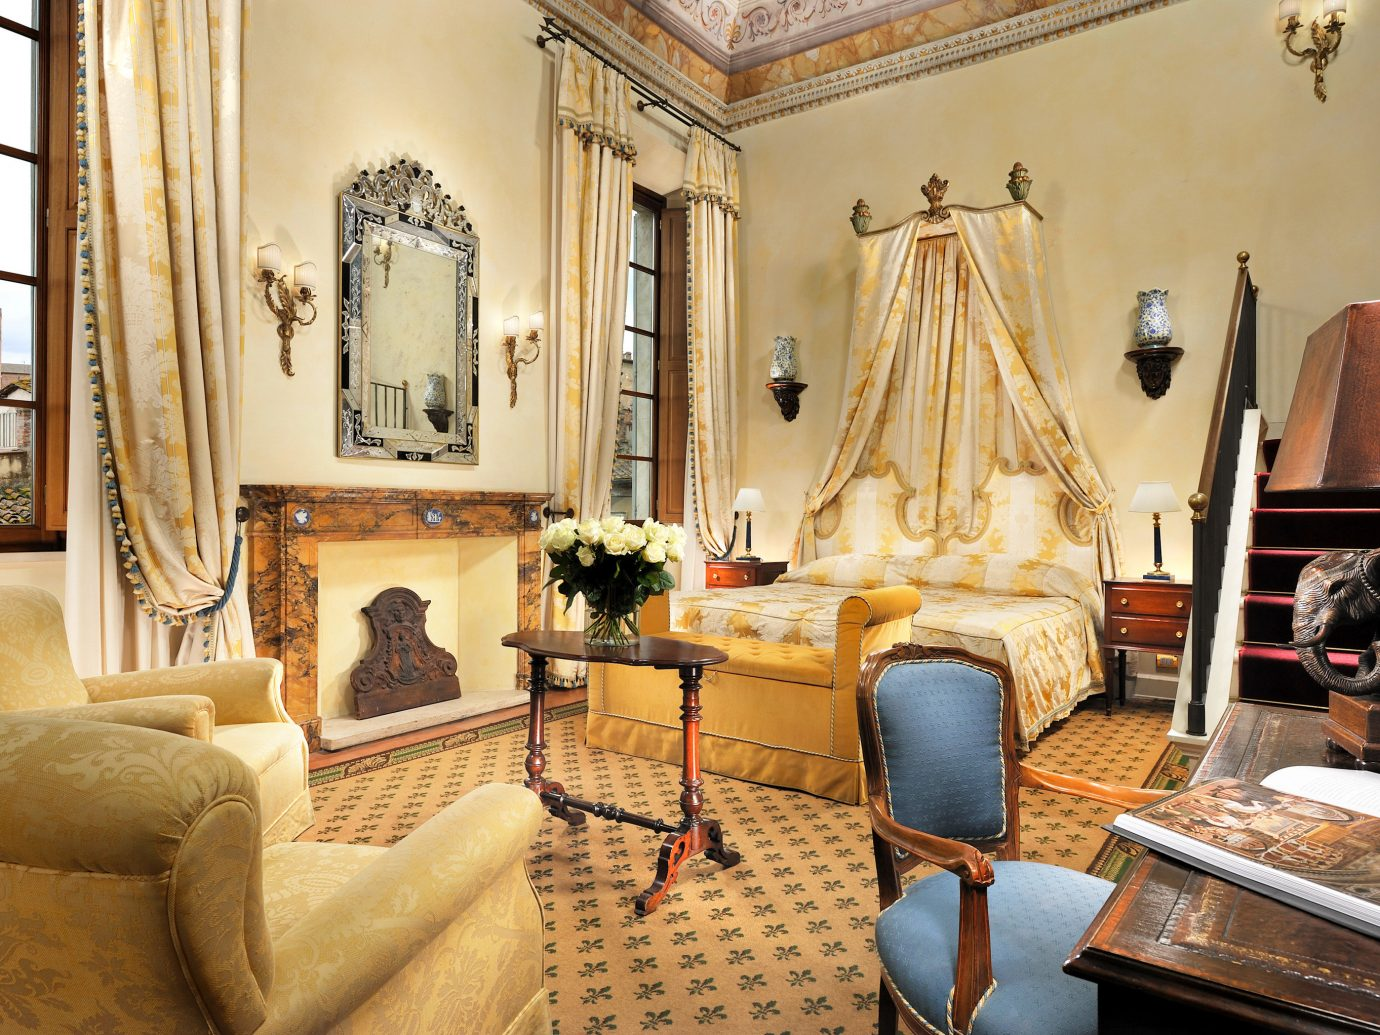 Italy Trip Ideas indoor wall room Living living room property estate home interior design mansion furniture cottage decorated